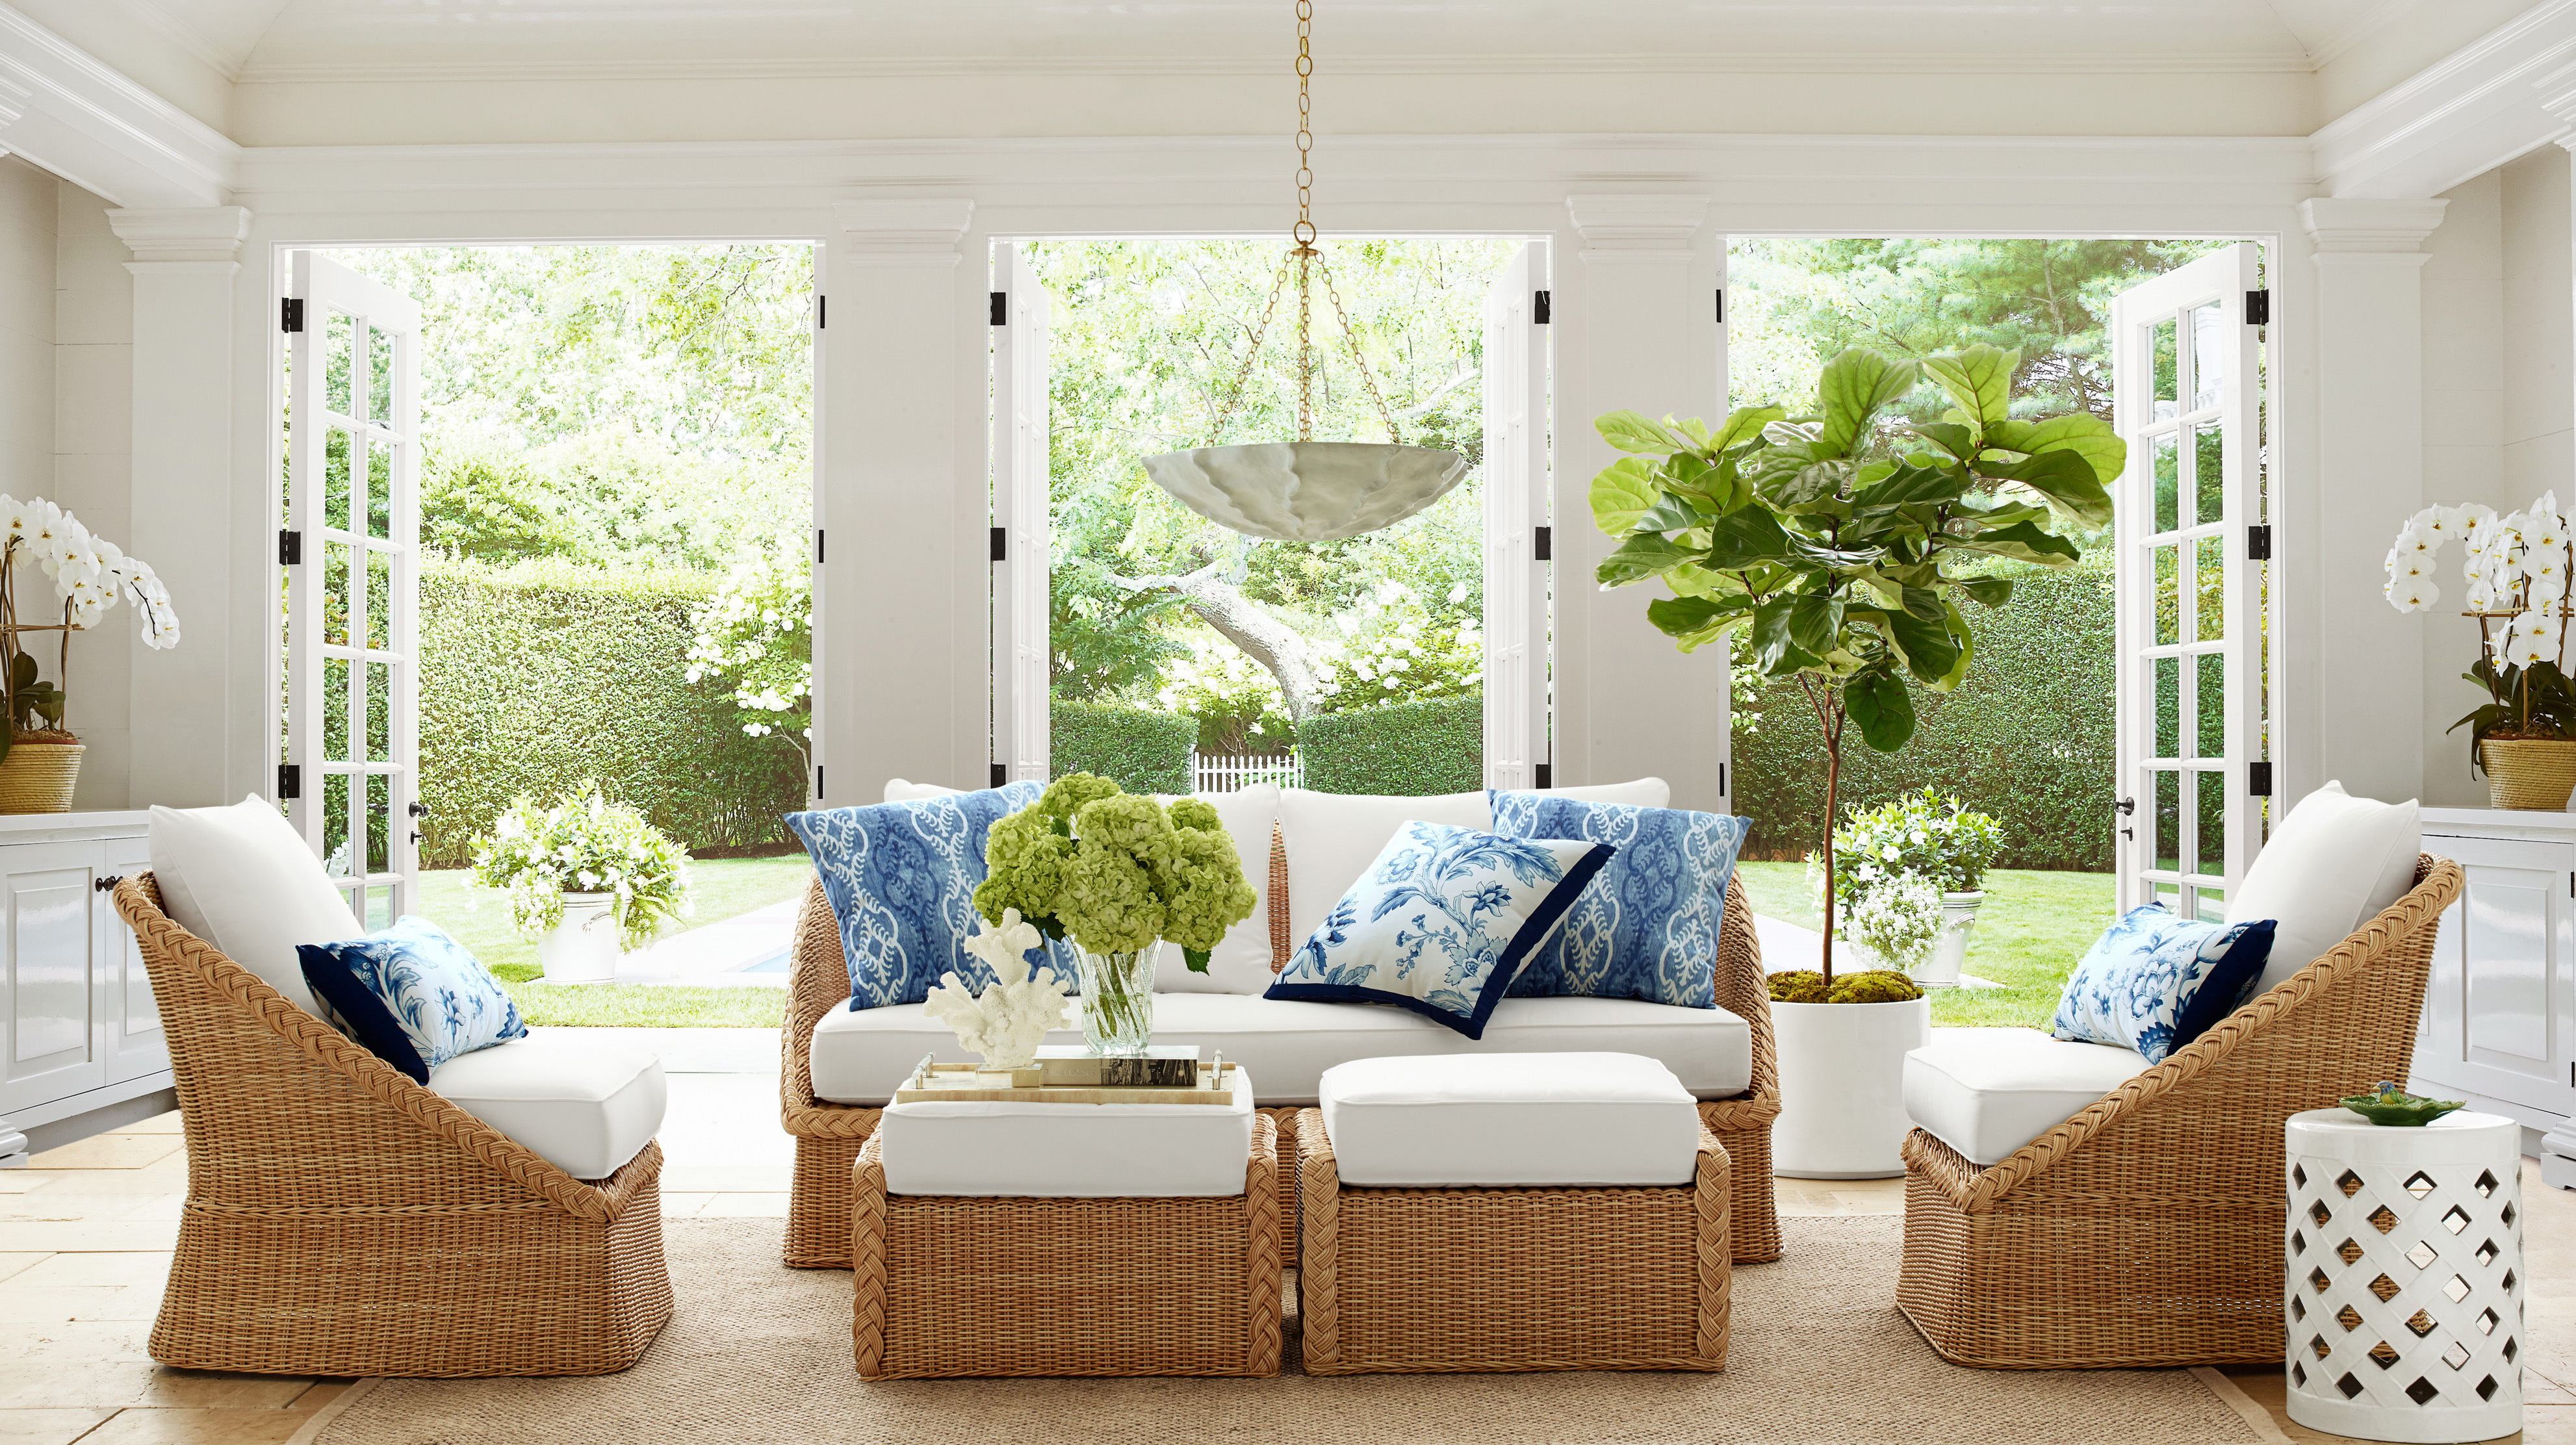 Delicieux WILLIAMS SONOMA AND WILLIAMS SONOMA HOME LAUNCH NEW SUMMER COLLECTION WITH AERIN  LAUDER | Business Wire